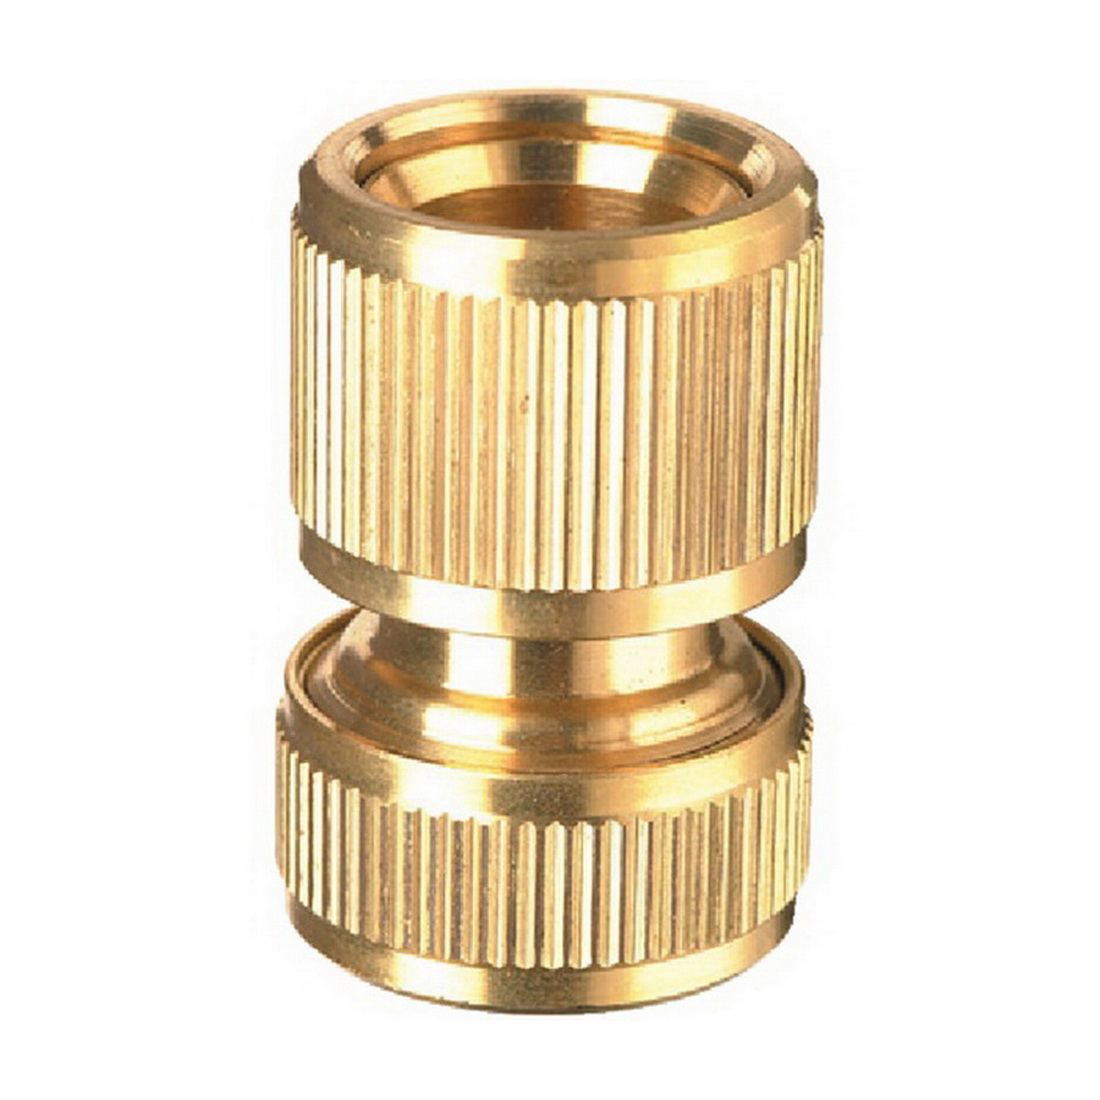 Brass Hose Connector 12mm Connection